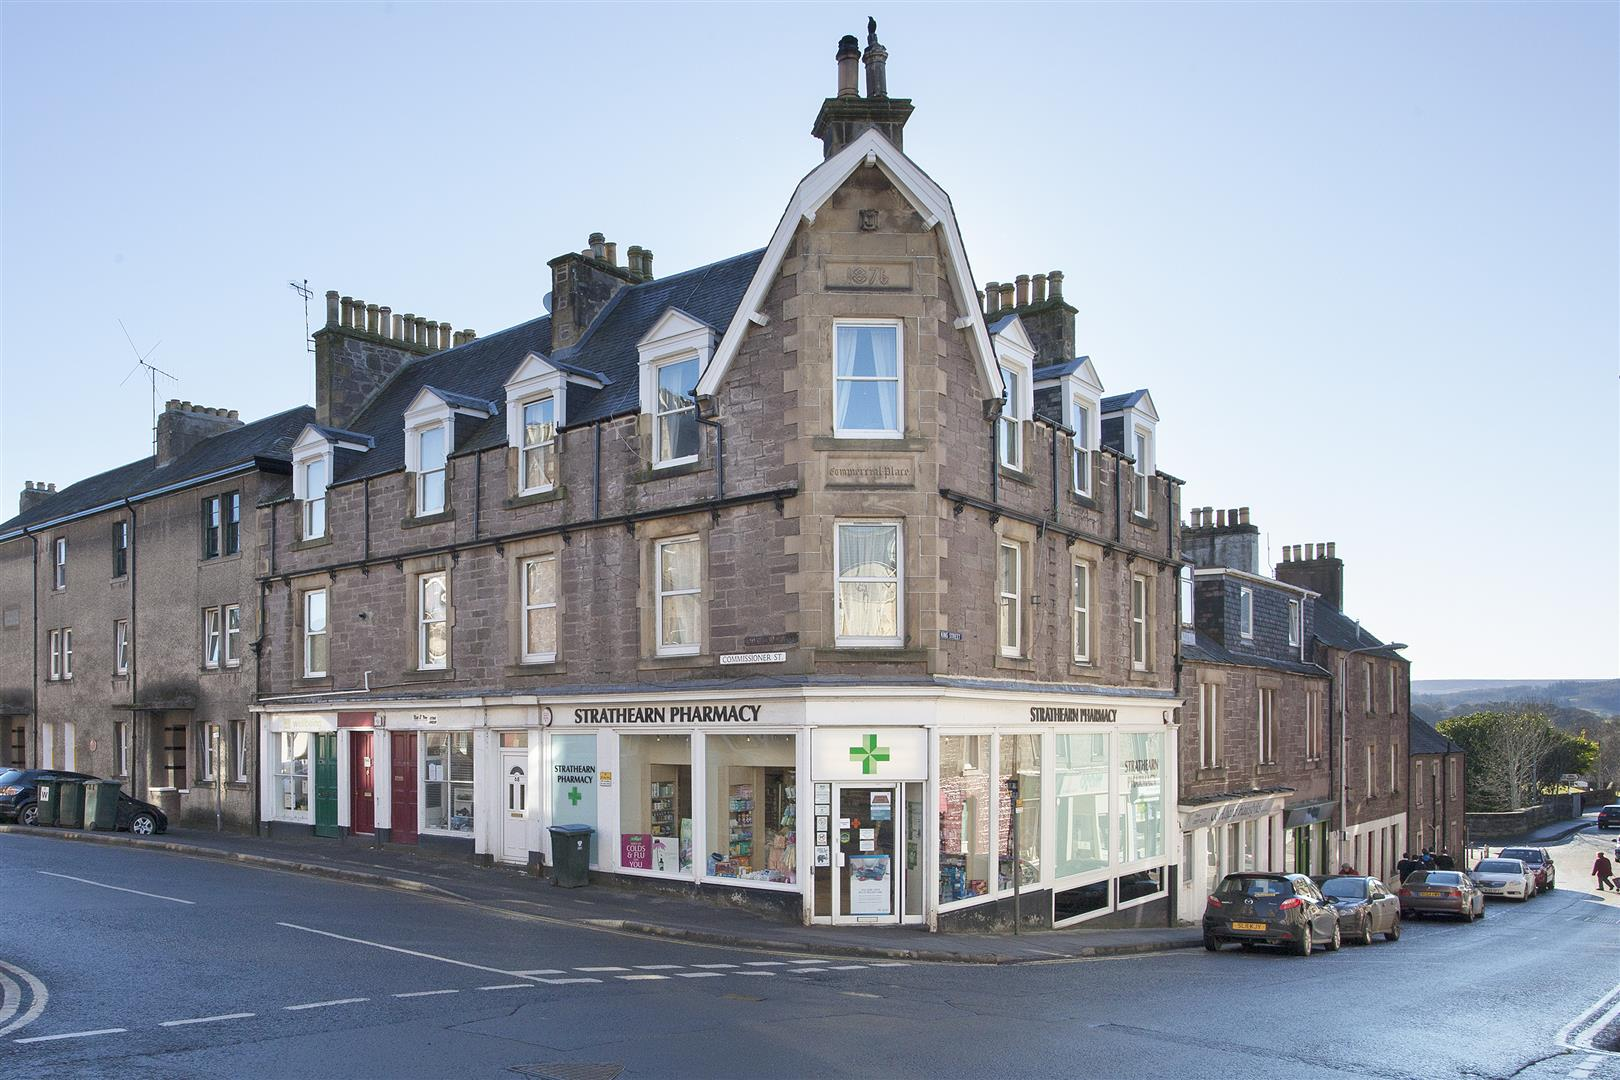 64, Commissioner Street, Crieff, Perthshire, PH7 3AY, UK